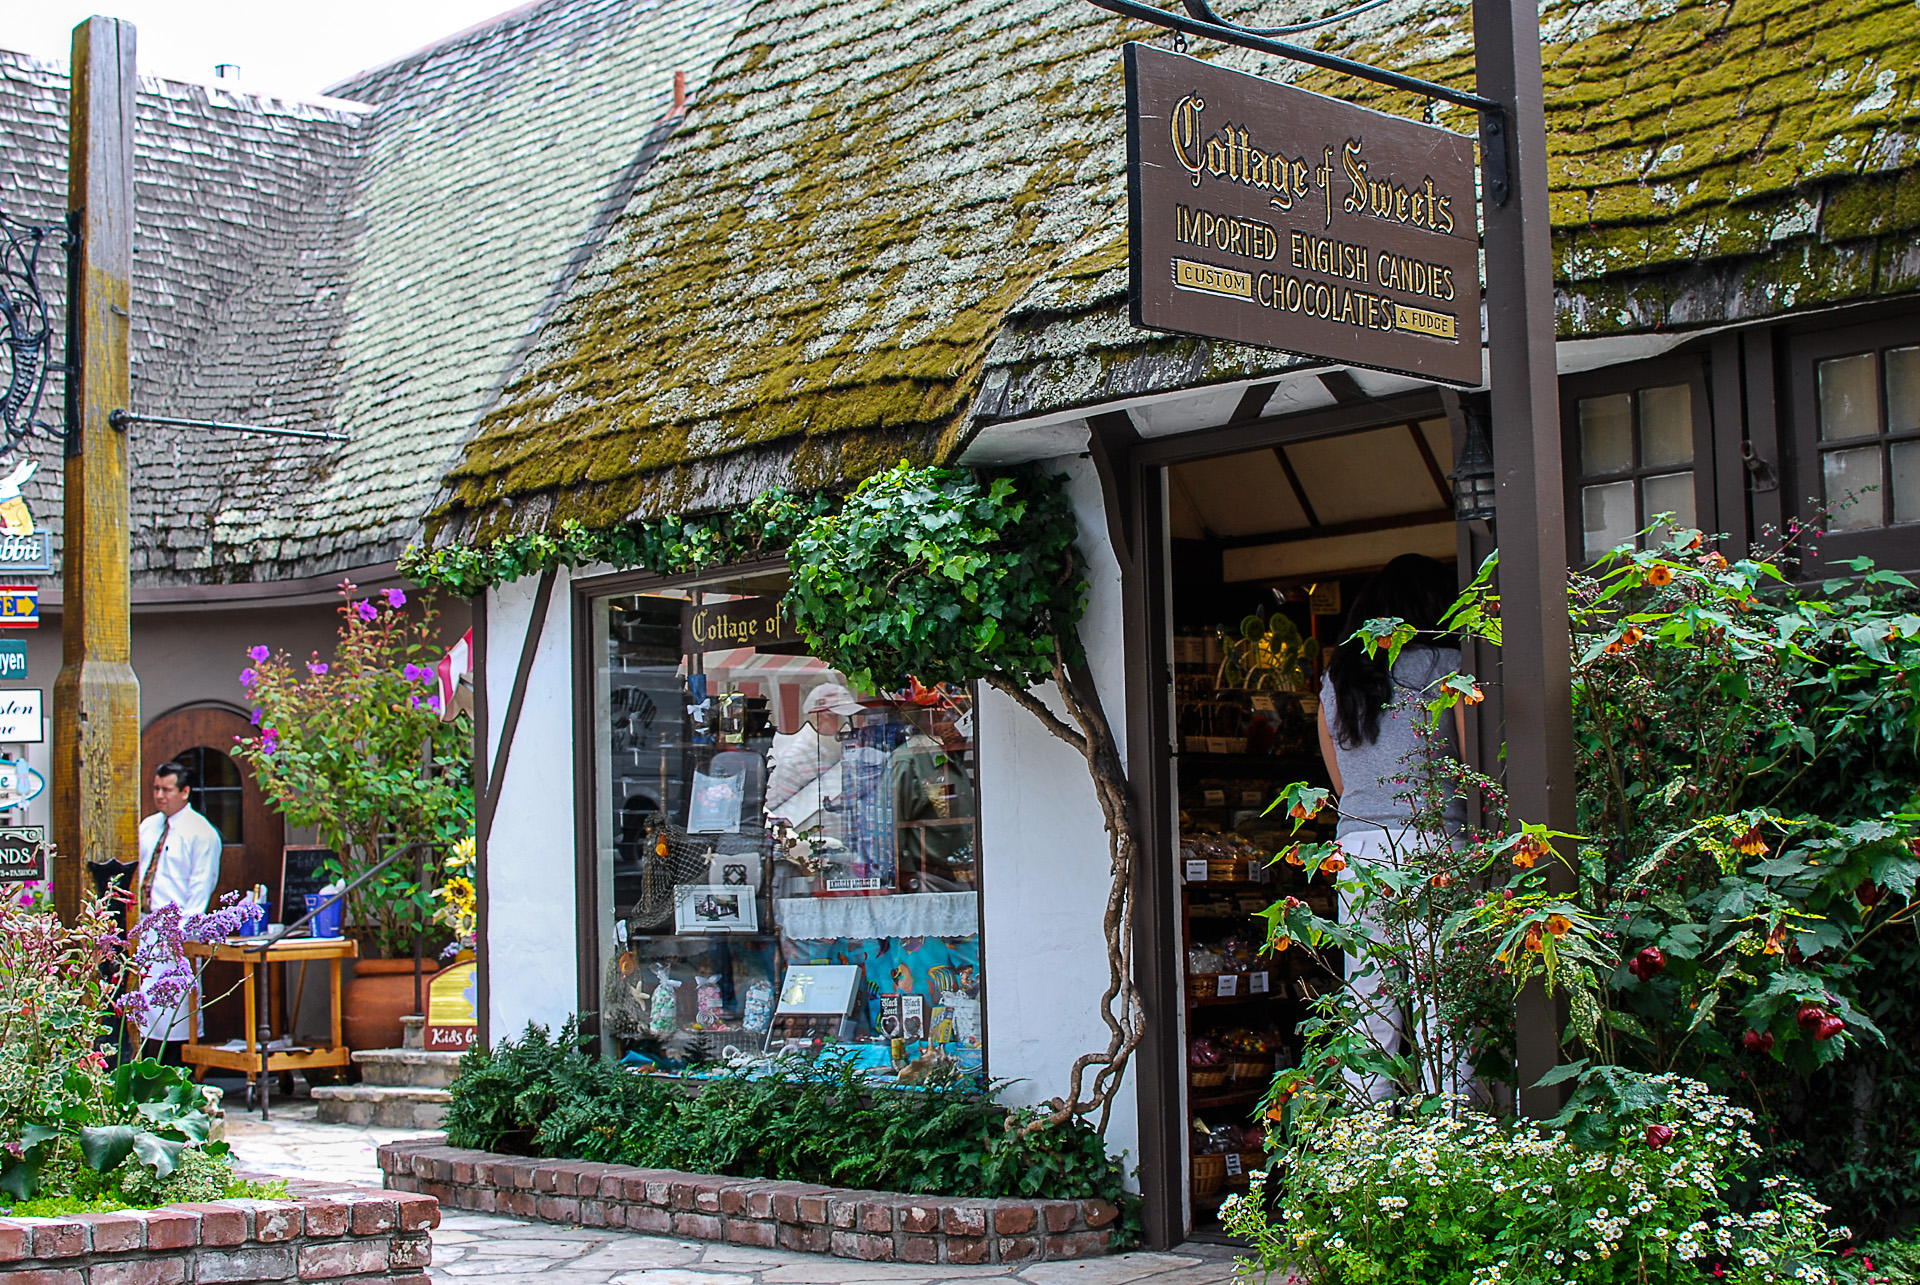 carmel-by-the-sea-california-ld-01-5